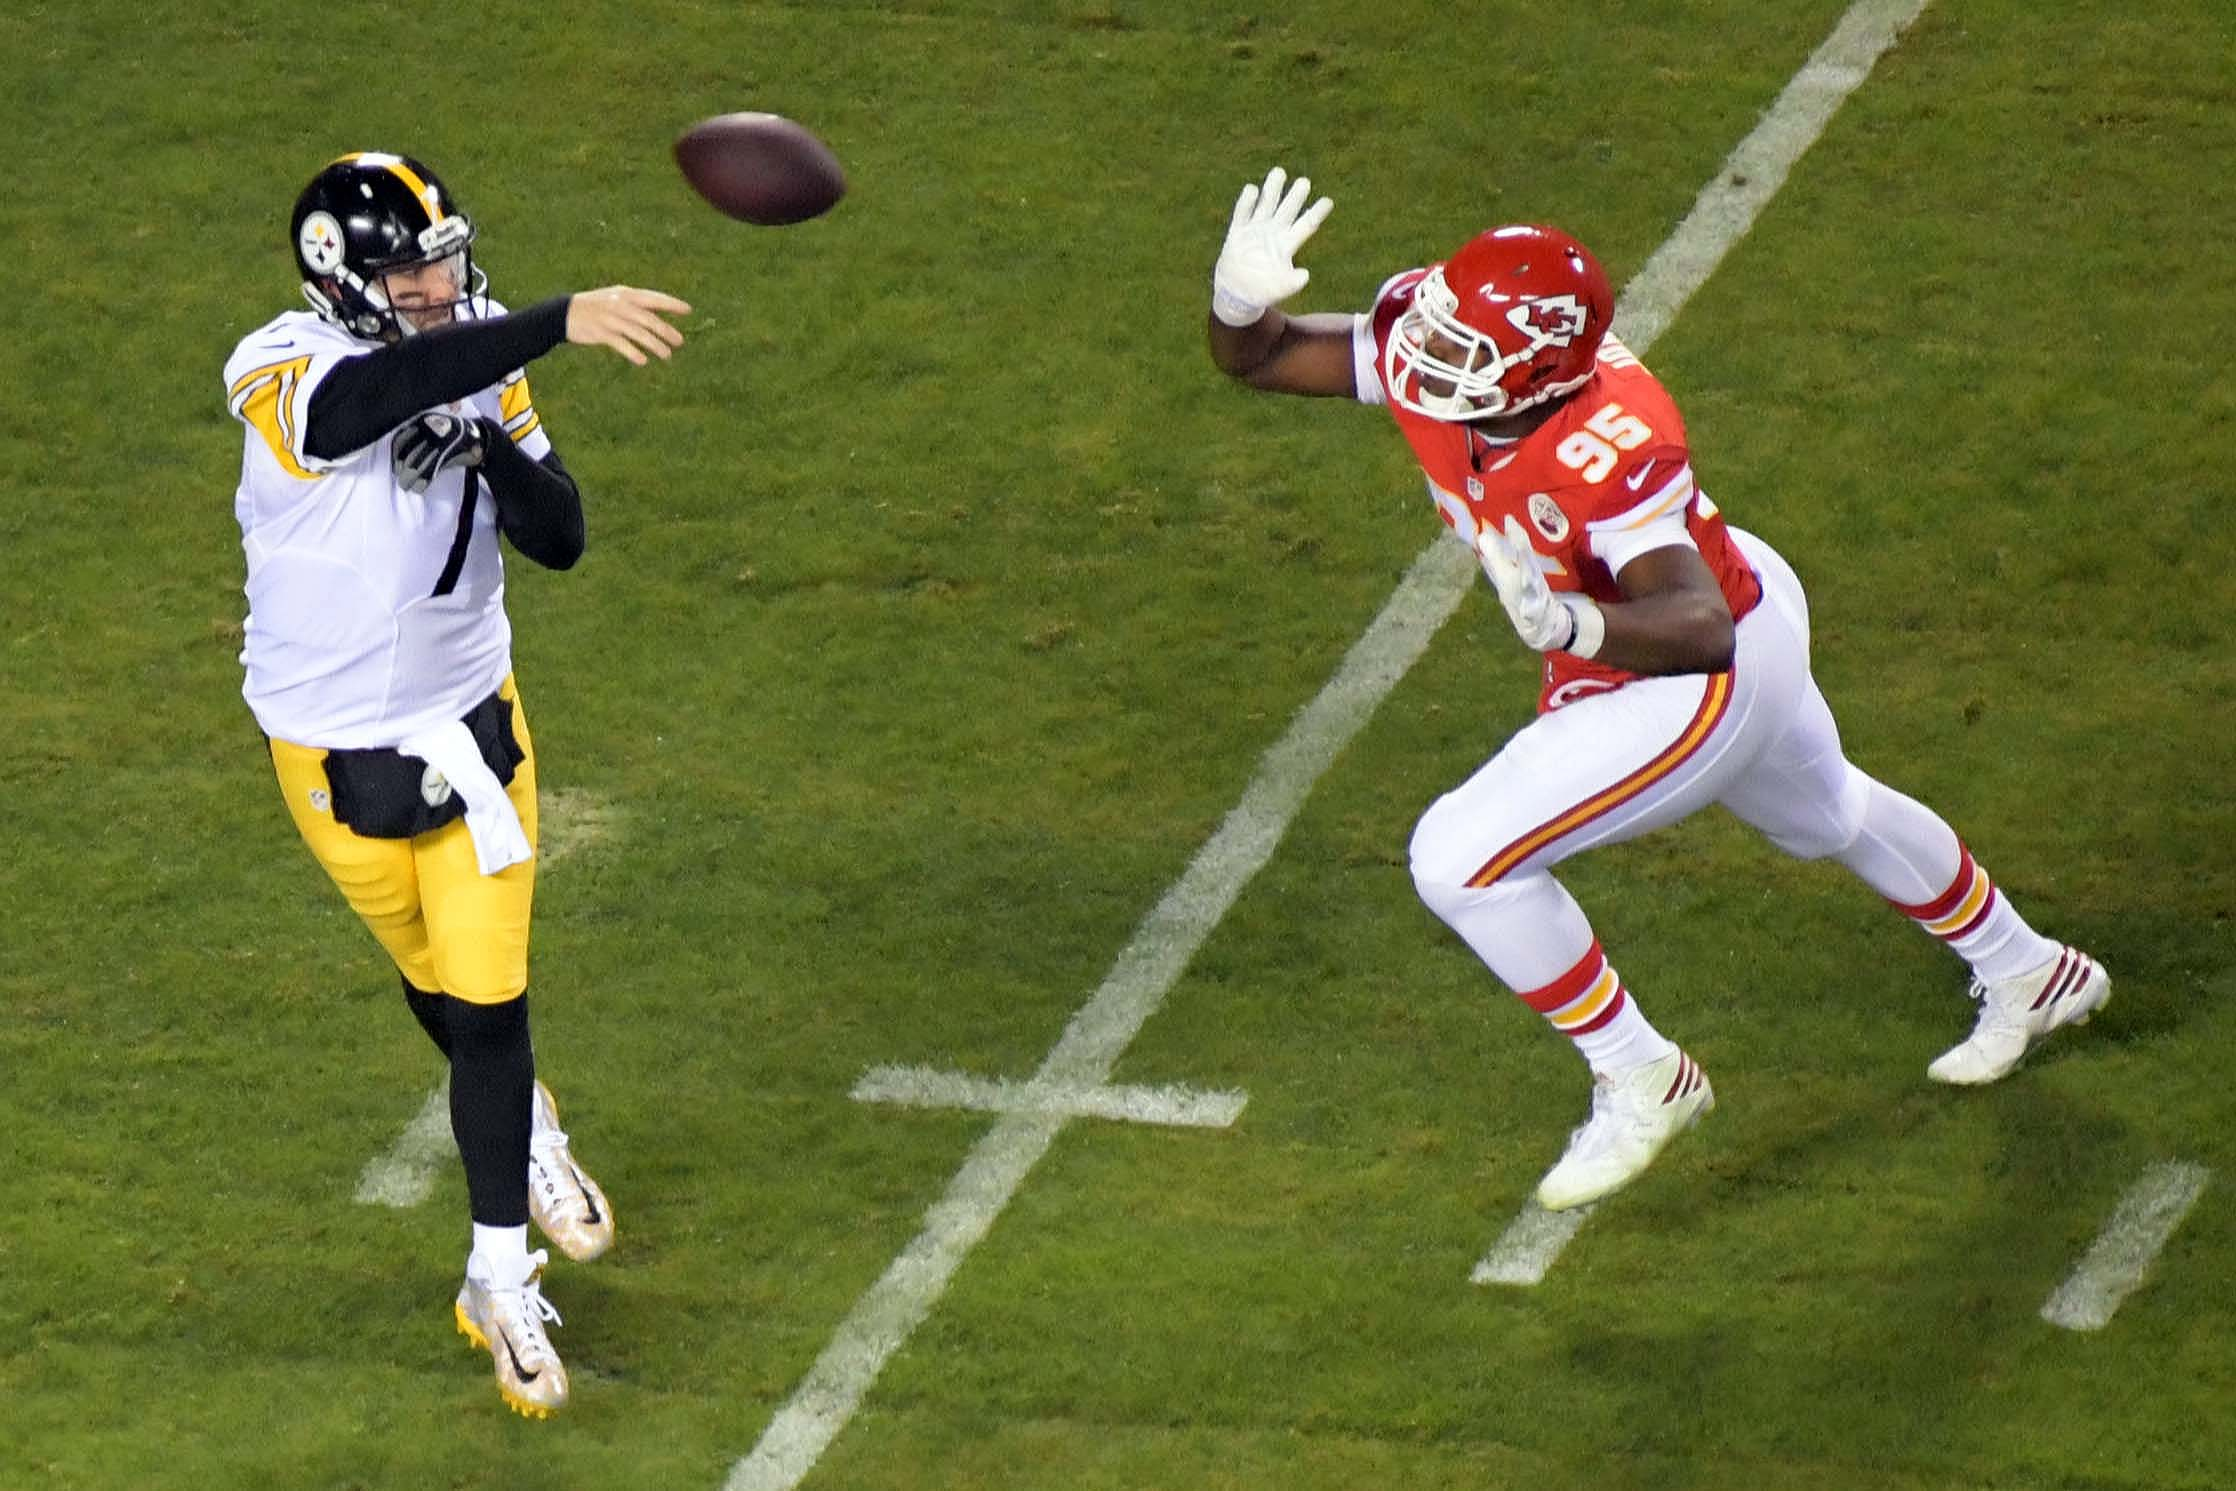 9812724-nfl-afc-divisional-pittsburgh-steelers-at-kansas-city-chiefs